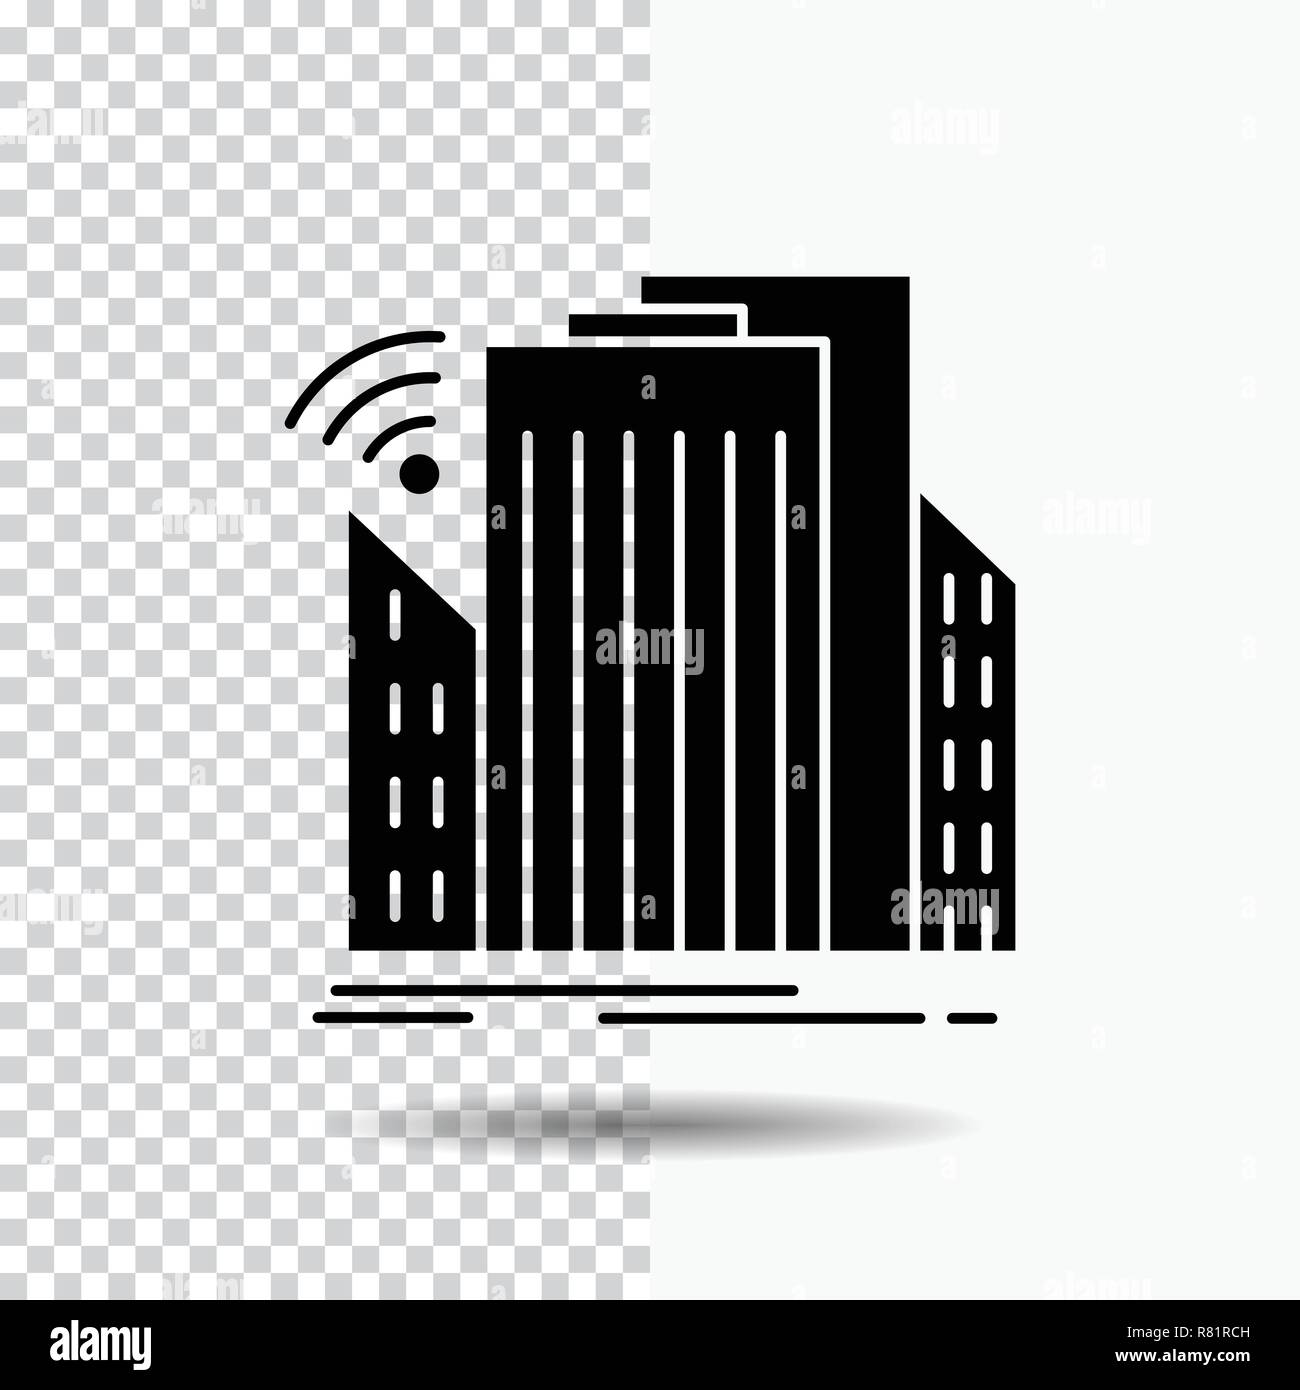 Buildings, city, sensor, smart, urban Glyph Icon on Transparent Background. Black Icon - Stock Vector